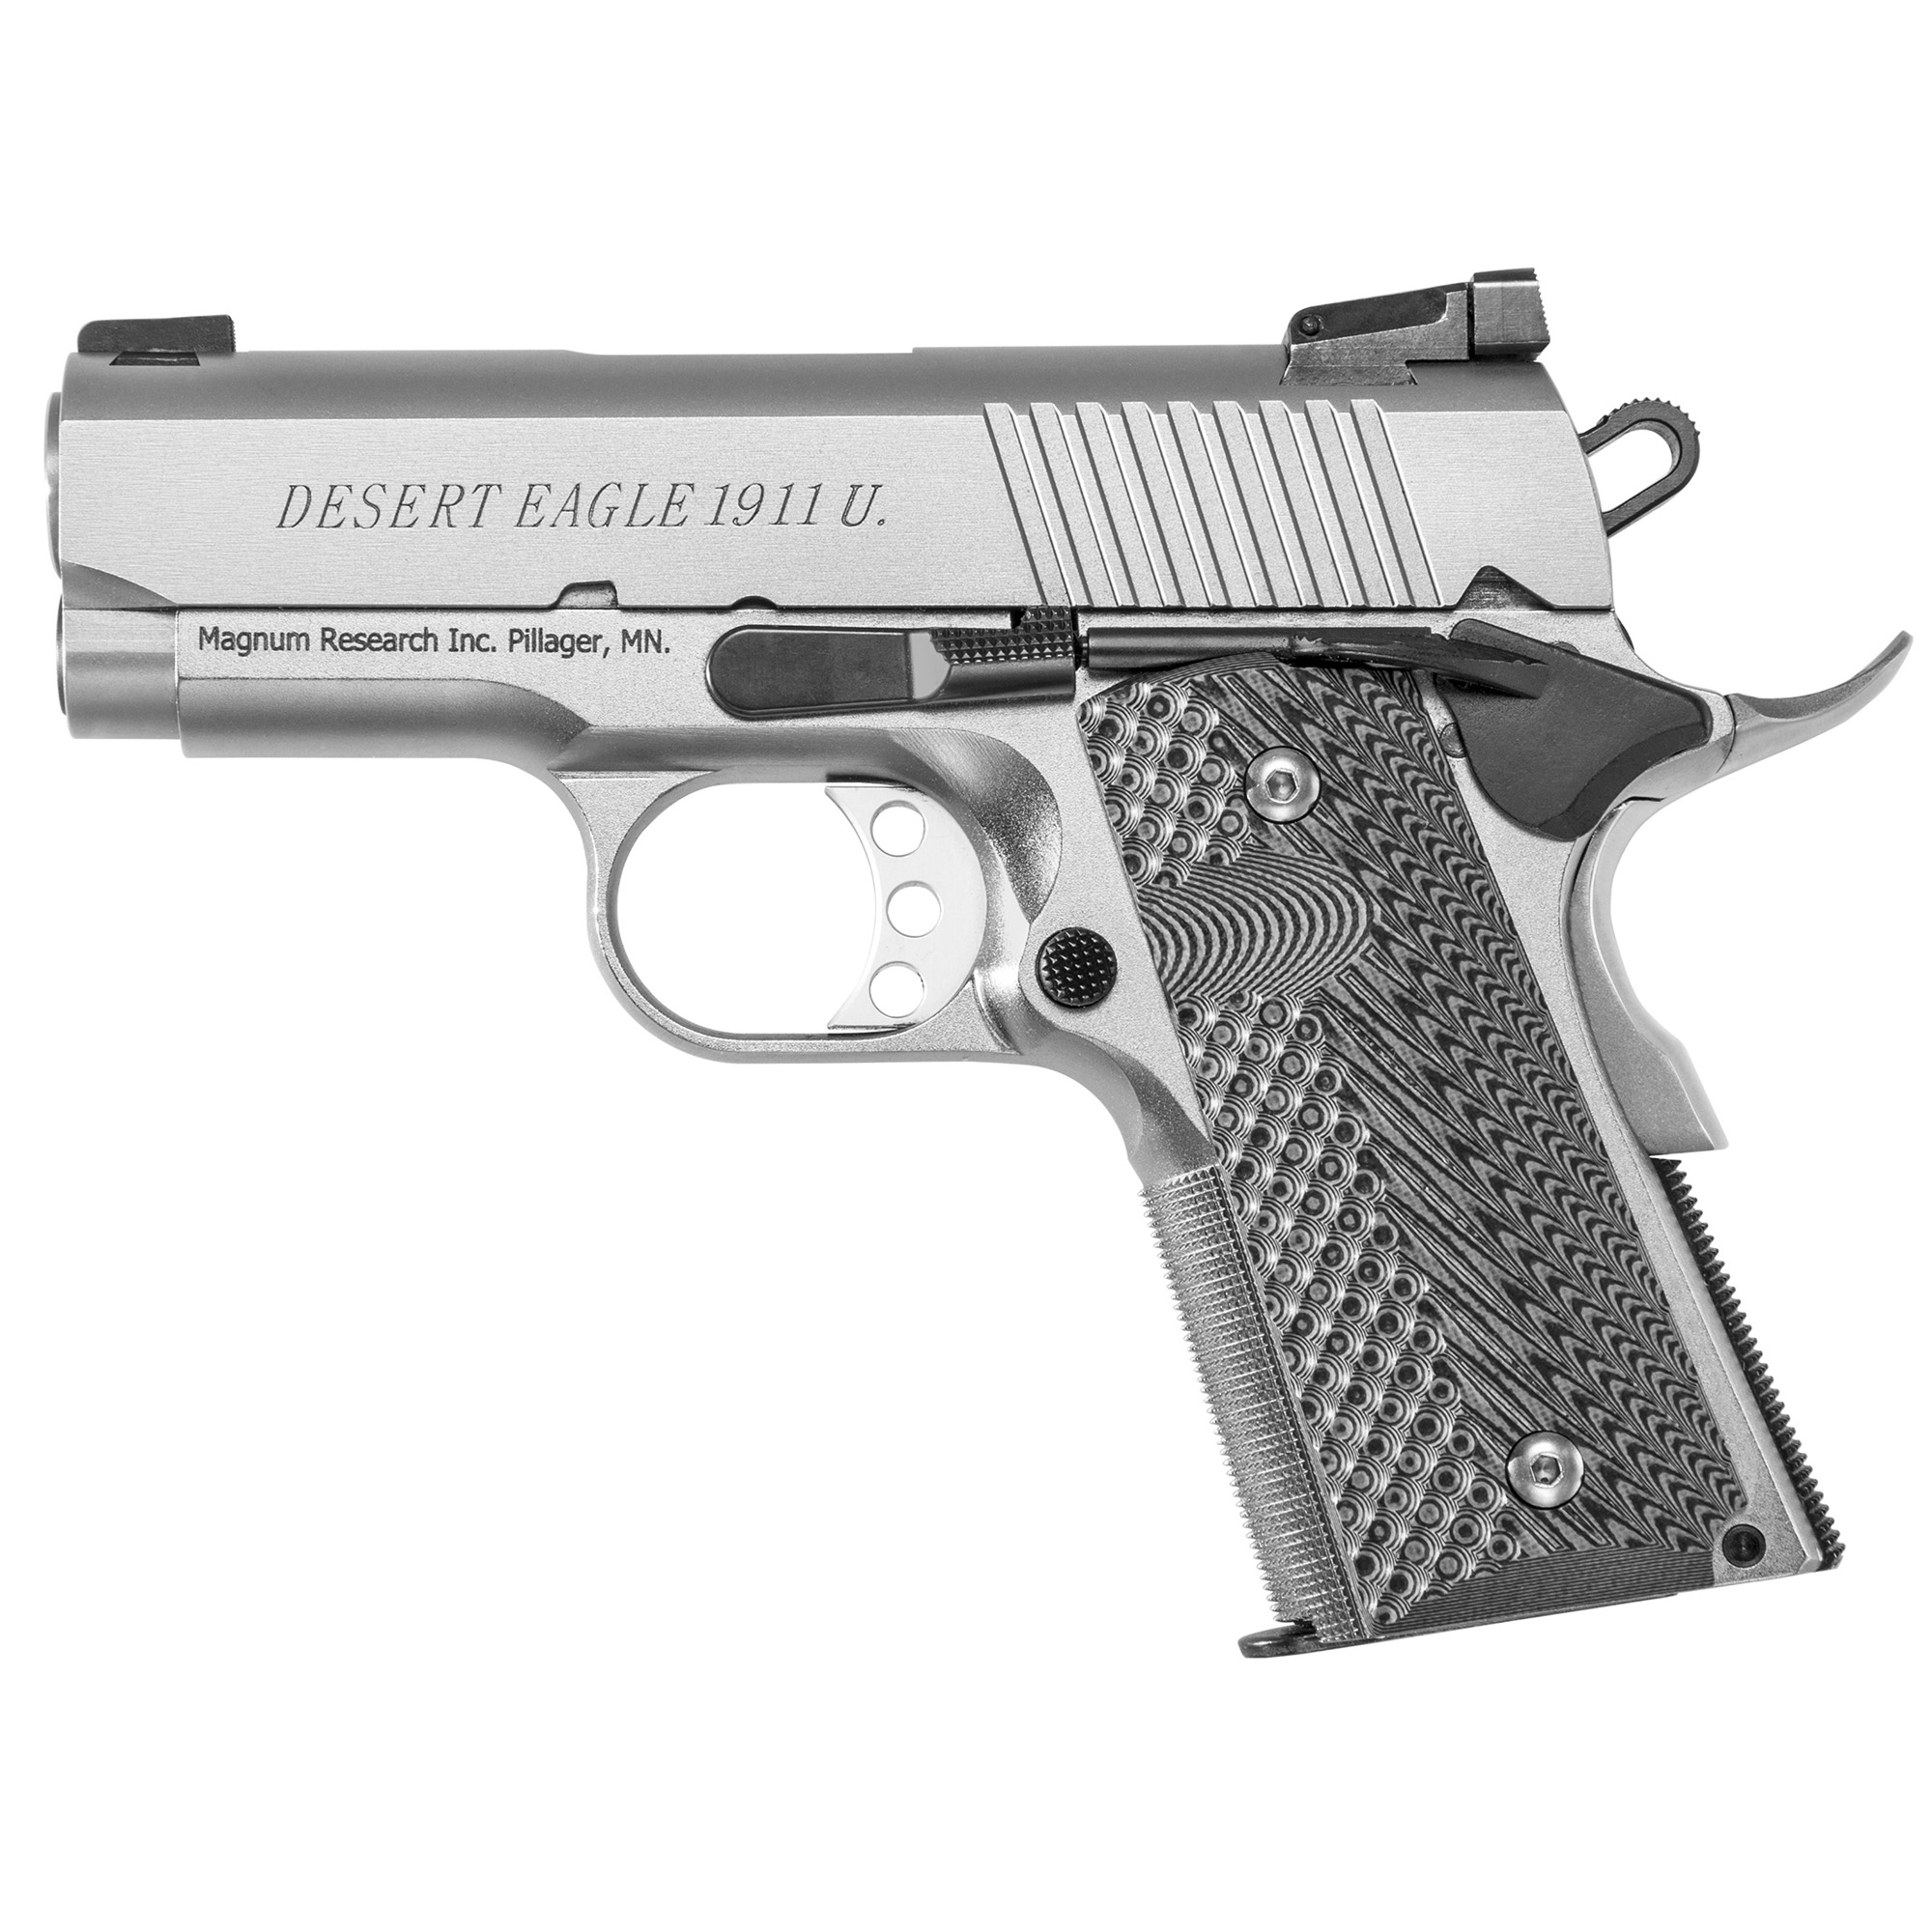 """All Desert Eagle 1911 series 70 slide and frame rails are machined to aerospace tolerances"""" delivering accuracy that will match any custom gun. Offered in both Chrome Moly and Stainless and feature stainless match barrels"""" G-10 grips"""" light triggers with zero creep"""" and a stainless beavertail grip safety. The G (5"""" barrel) and C (4.33"""" barrel) models are equipped with fixed combat sights and the Undercover """"U"""" (3"""" barrel) models come with an adjustable rear sight. Desert Eagle 1911s chambered in 45 ACP all have a traditional feed ramp machined into the frame"""" while all 9mm pistols have a ramped barrel with fully supported chamber. Only the 1911G models have a traditional barrel bushing in the slide. The 1911C and U models feature a bushingless slide and bull barrel. With the shorter slides of the C and U models"""" the bushingless slide allows for a longer recoil spring and ensures reliable function. Includes two 6-round magazines."""